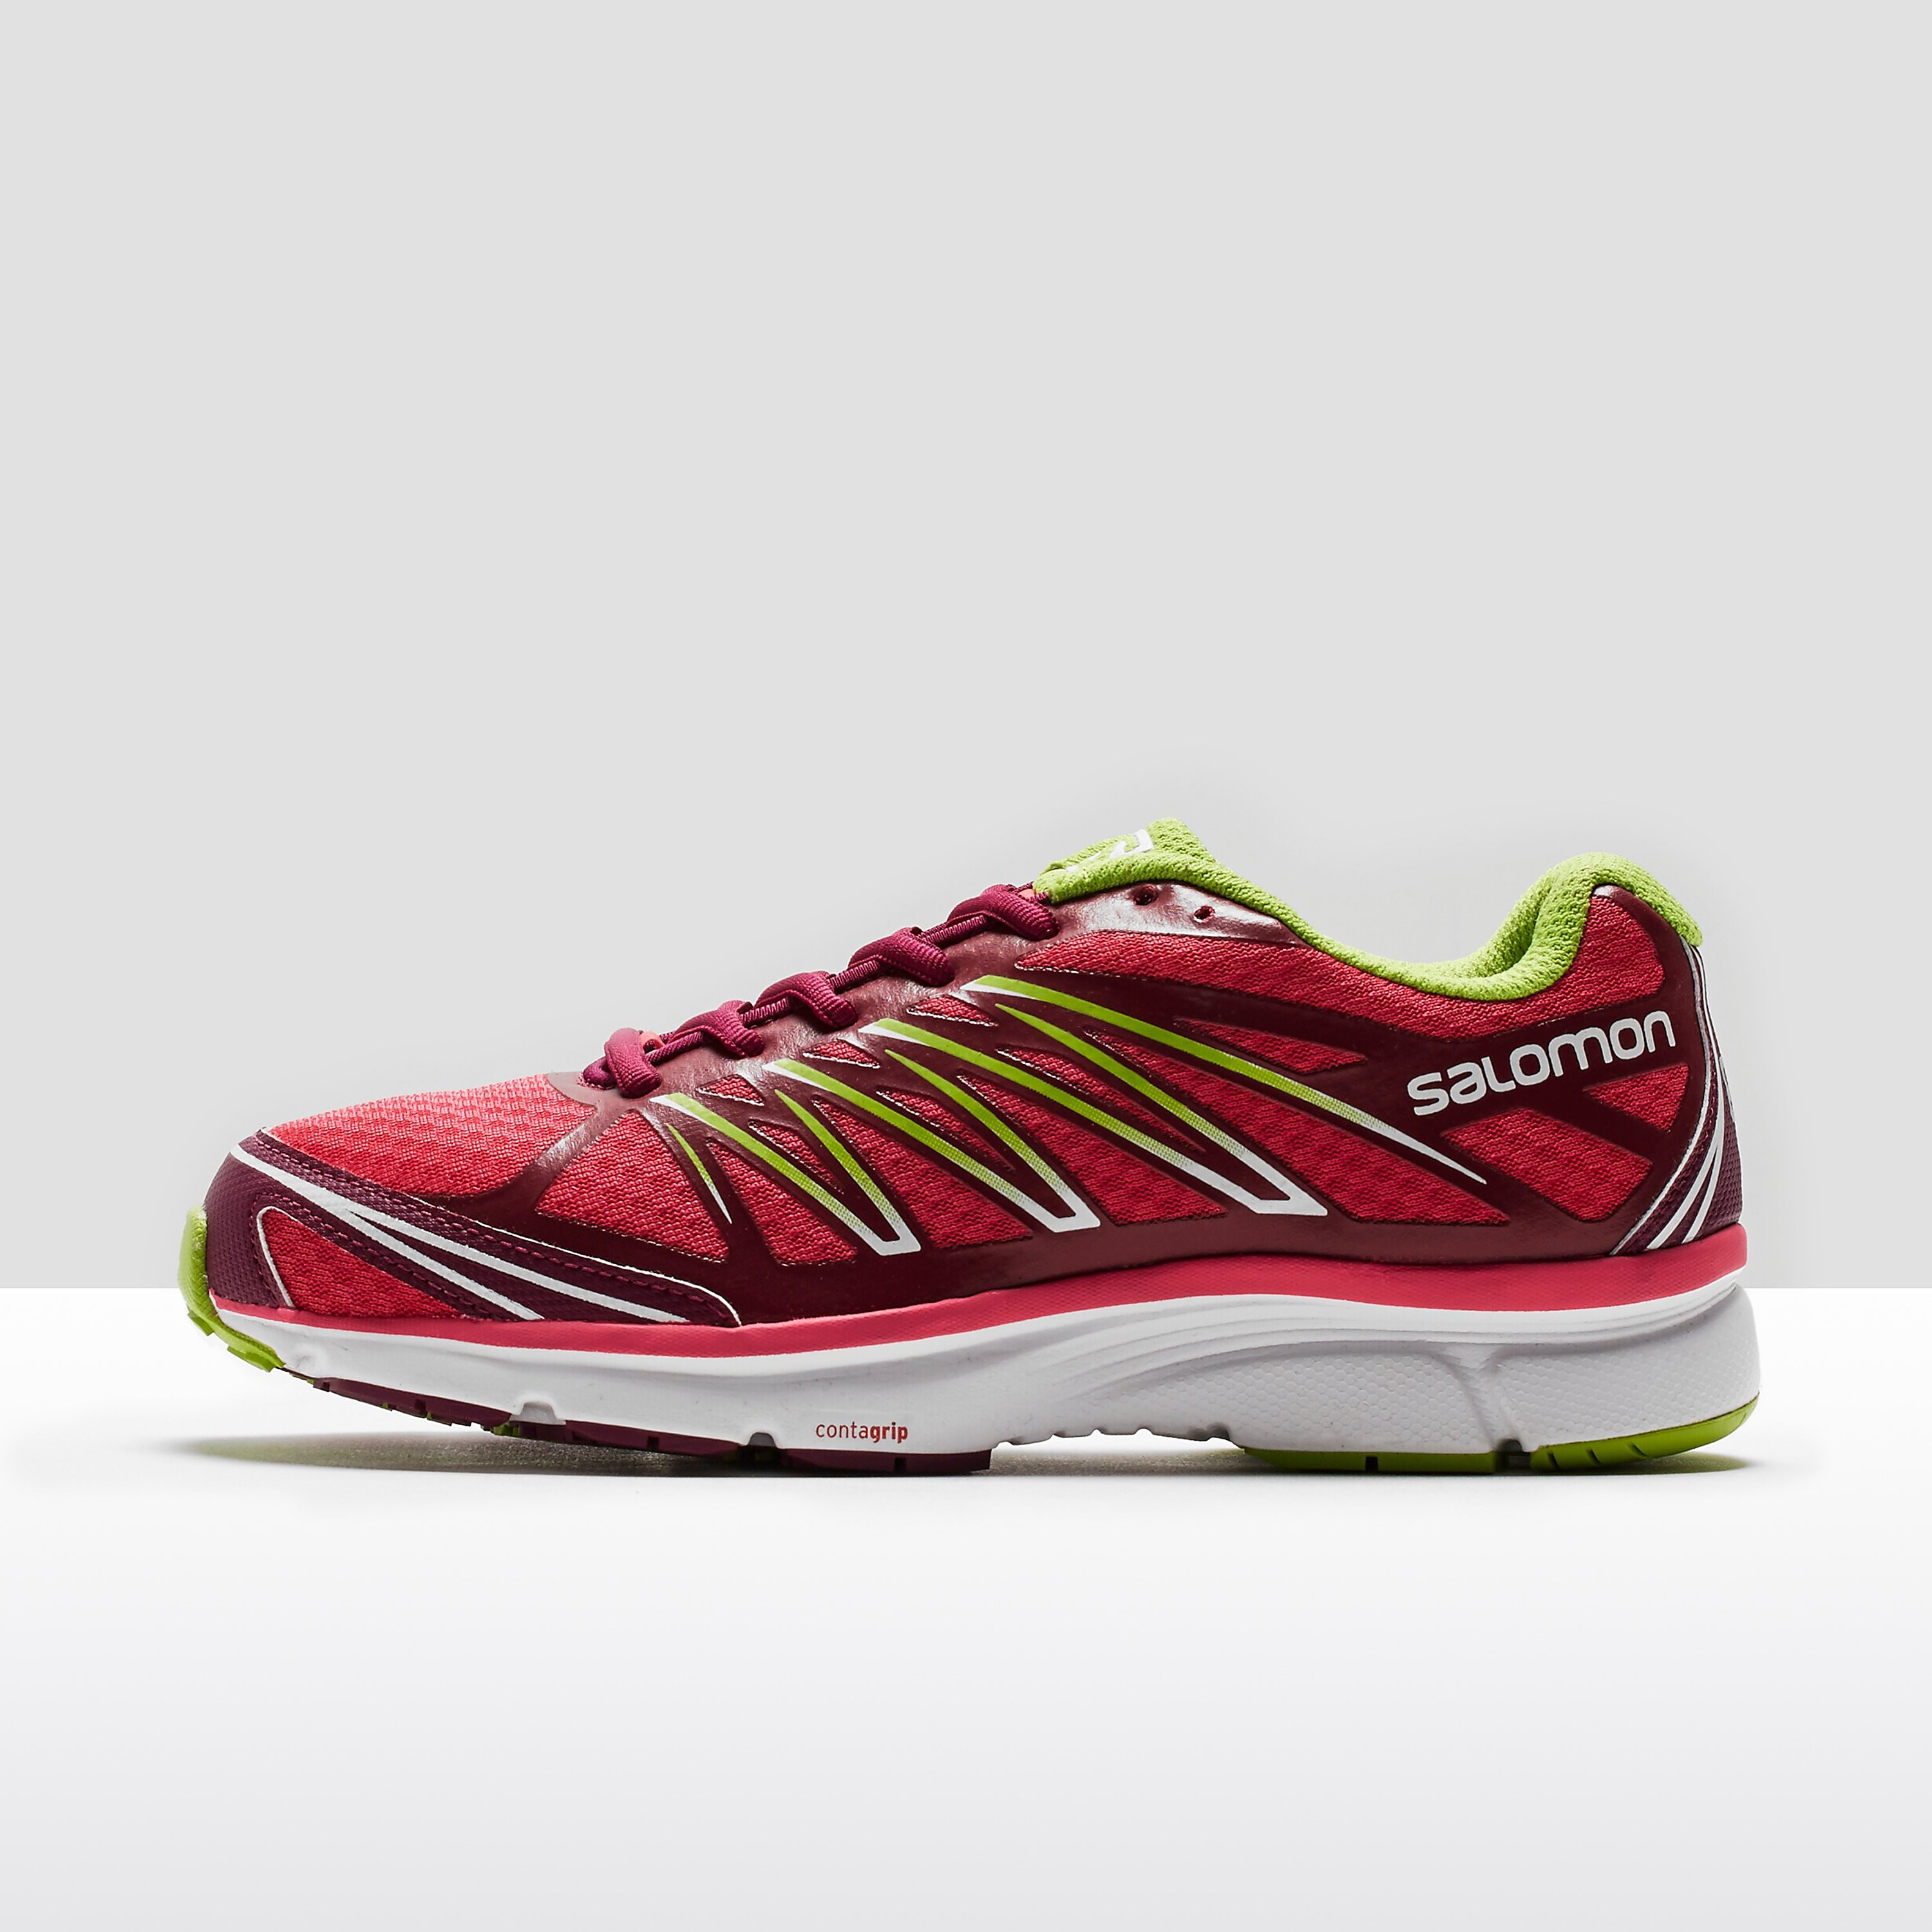 Salomon X-Tour 2 Ladies Trail Running Shoe